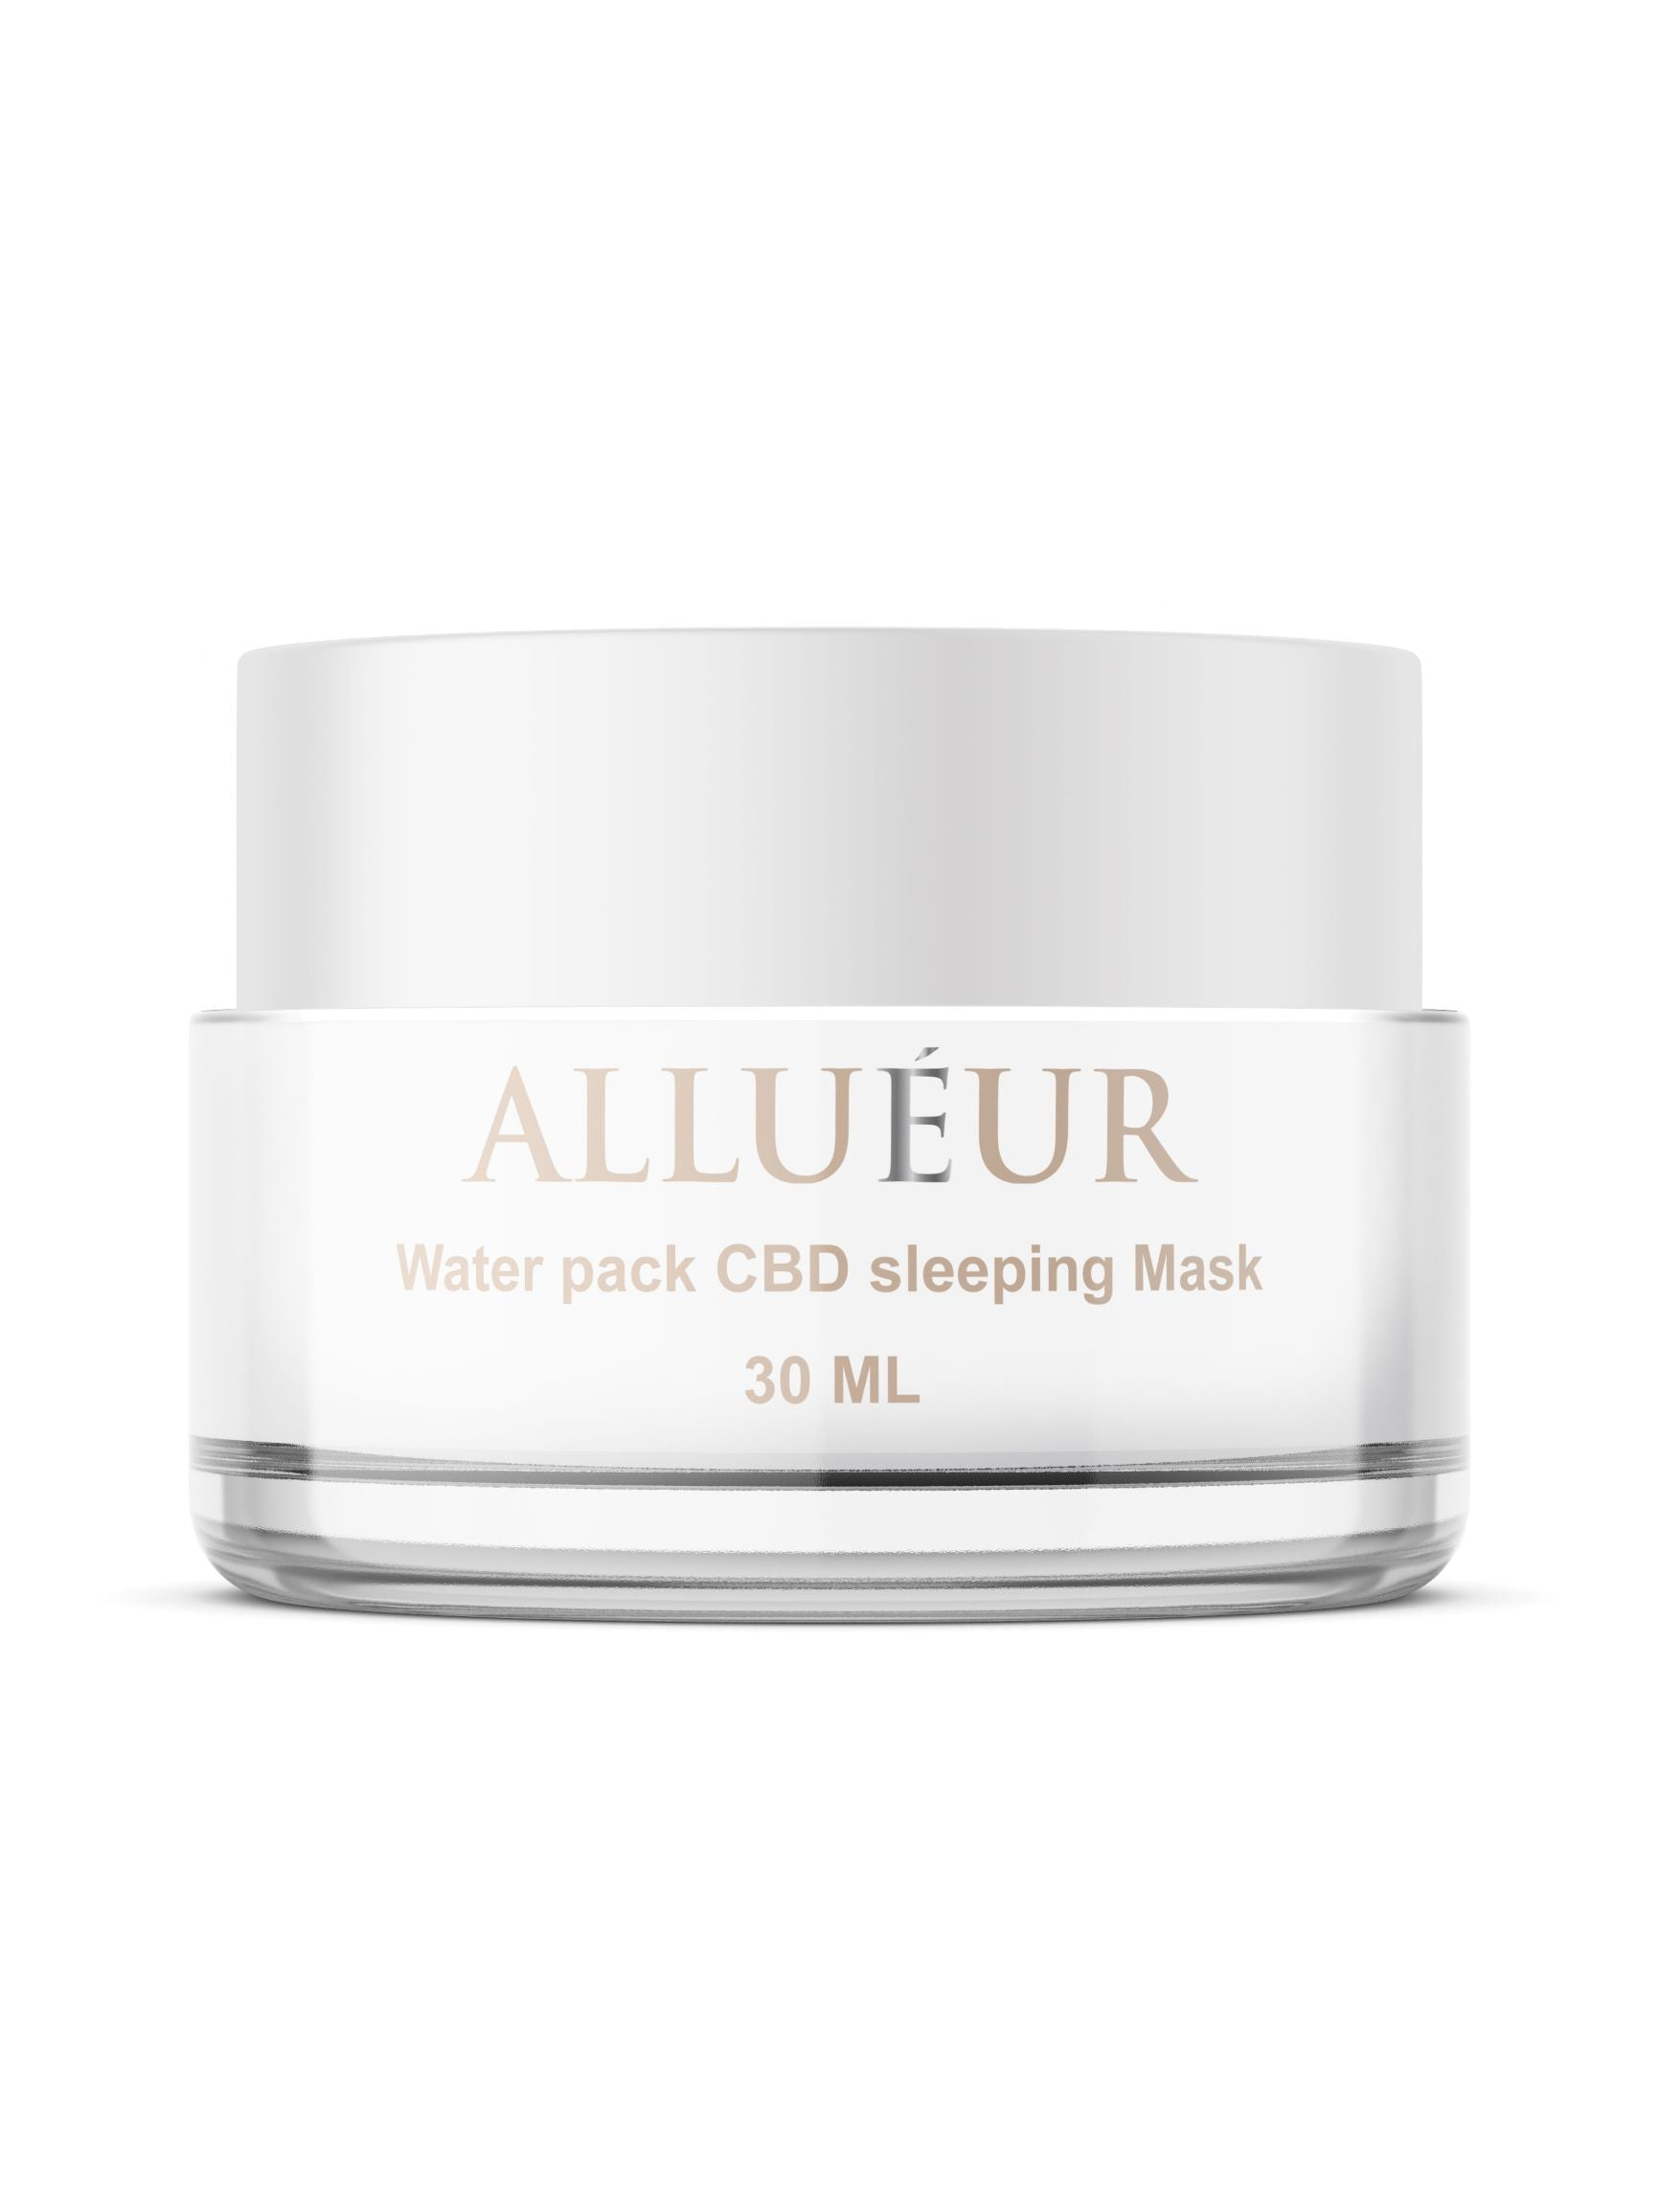 Allueur luxury cbd vitamin c face serum